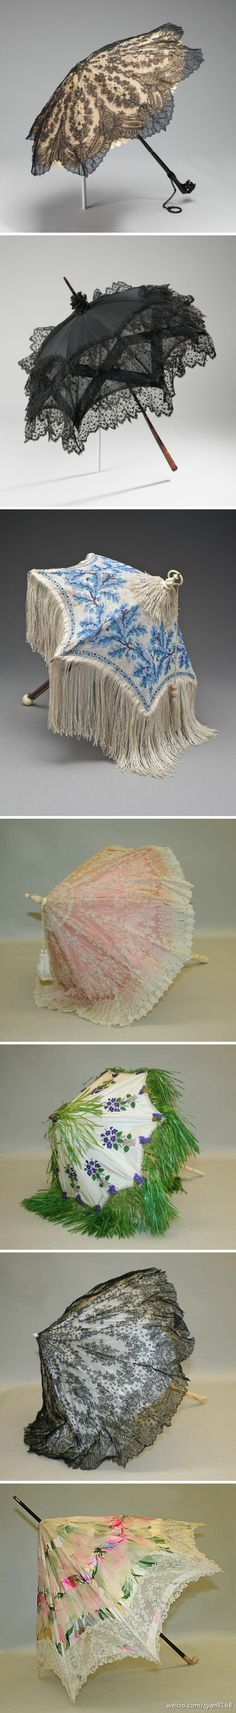 @Mandy Ness- these are amazing. Let's bring back strolling around with parasols...    19th Century Parasols